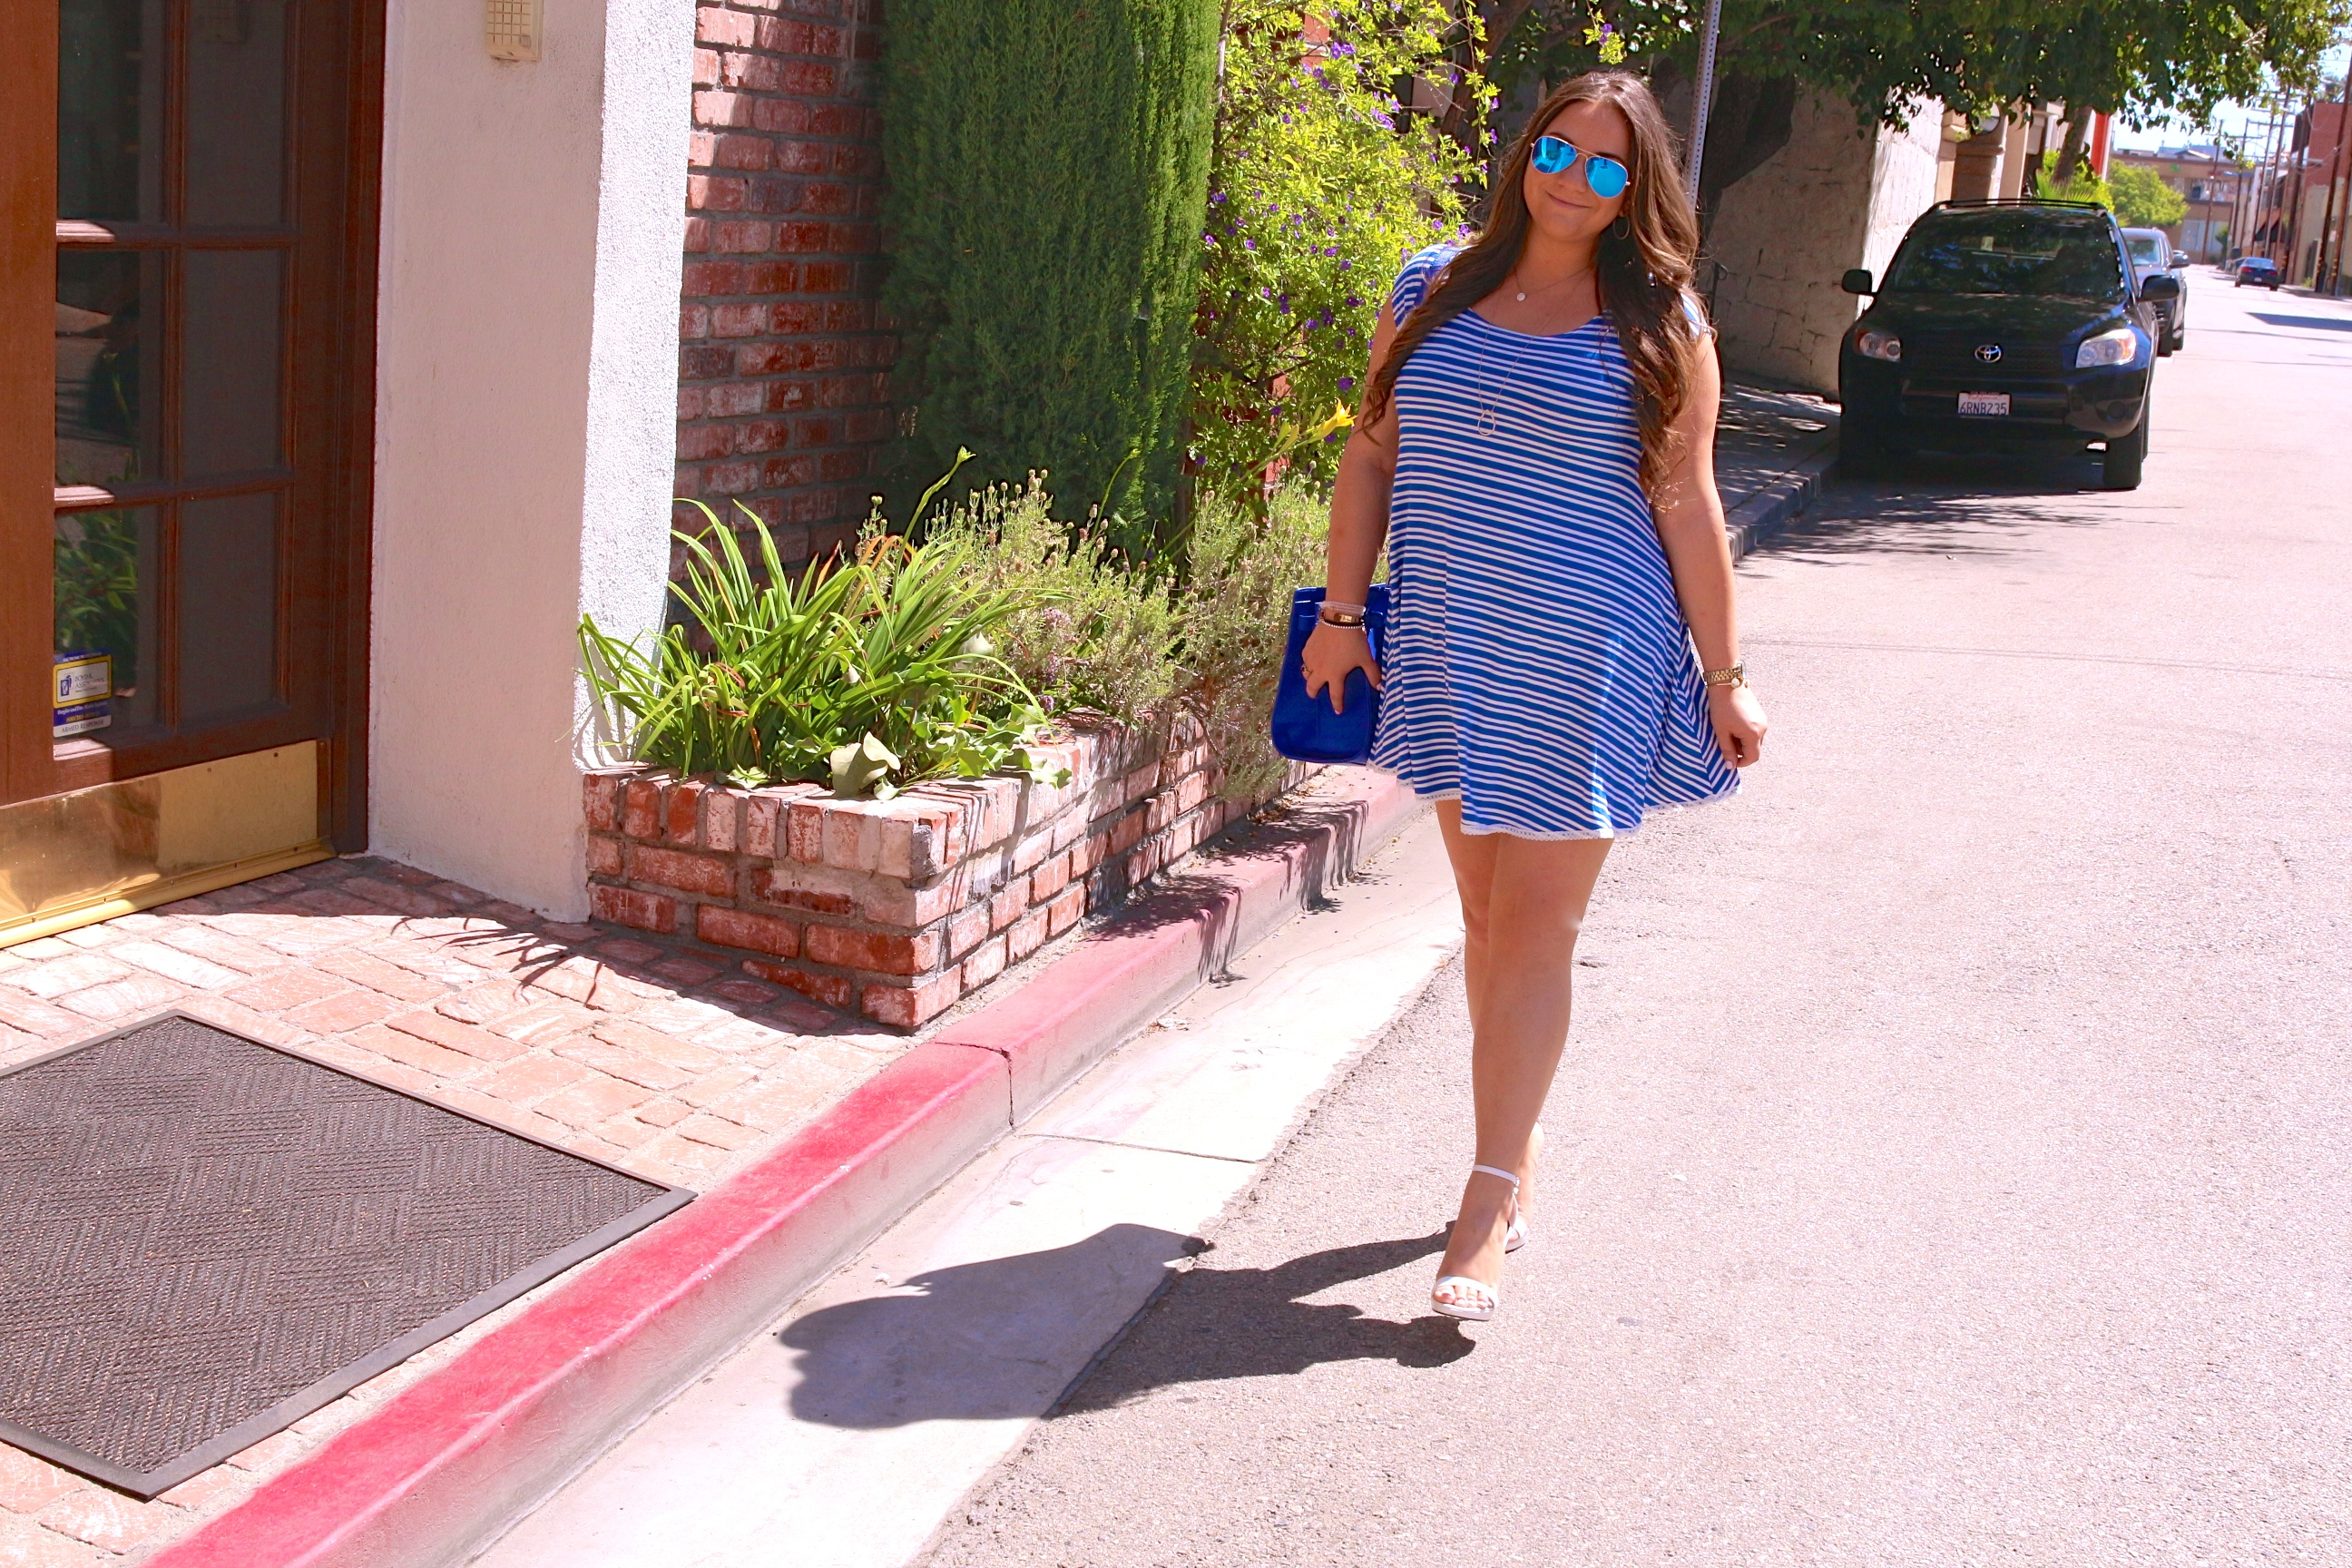 missyonmadison, melissa tierney, fashion blog, fashion blogger, blue satchel, kenneth cole satchel, kenneth cole blue satchel, cobalt blue satchel, white and blue striped dress, striped dress, ami clubwear, ami clubwear striped dress, ray bans, blue aviators, blue ray bans, white ankle strap heels, white ankle strap sandals, steve madden white heels, white ankle strap steve madden sandals, la blogger, fall fashion, how to wear color in the fall, pops of color,